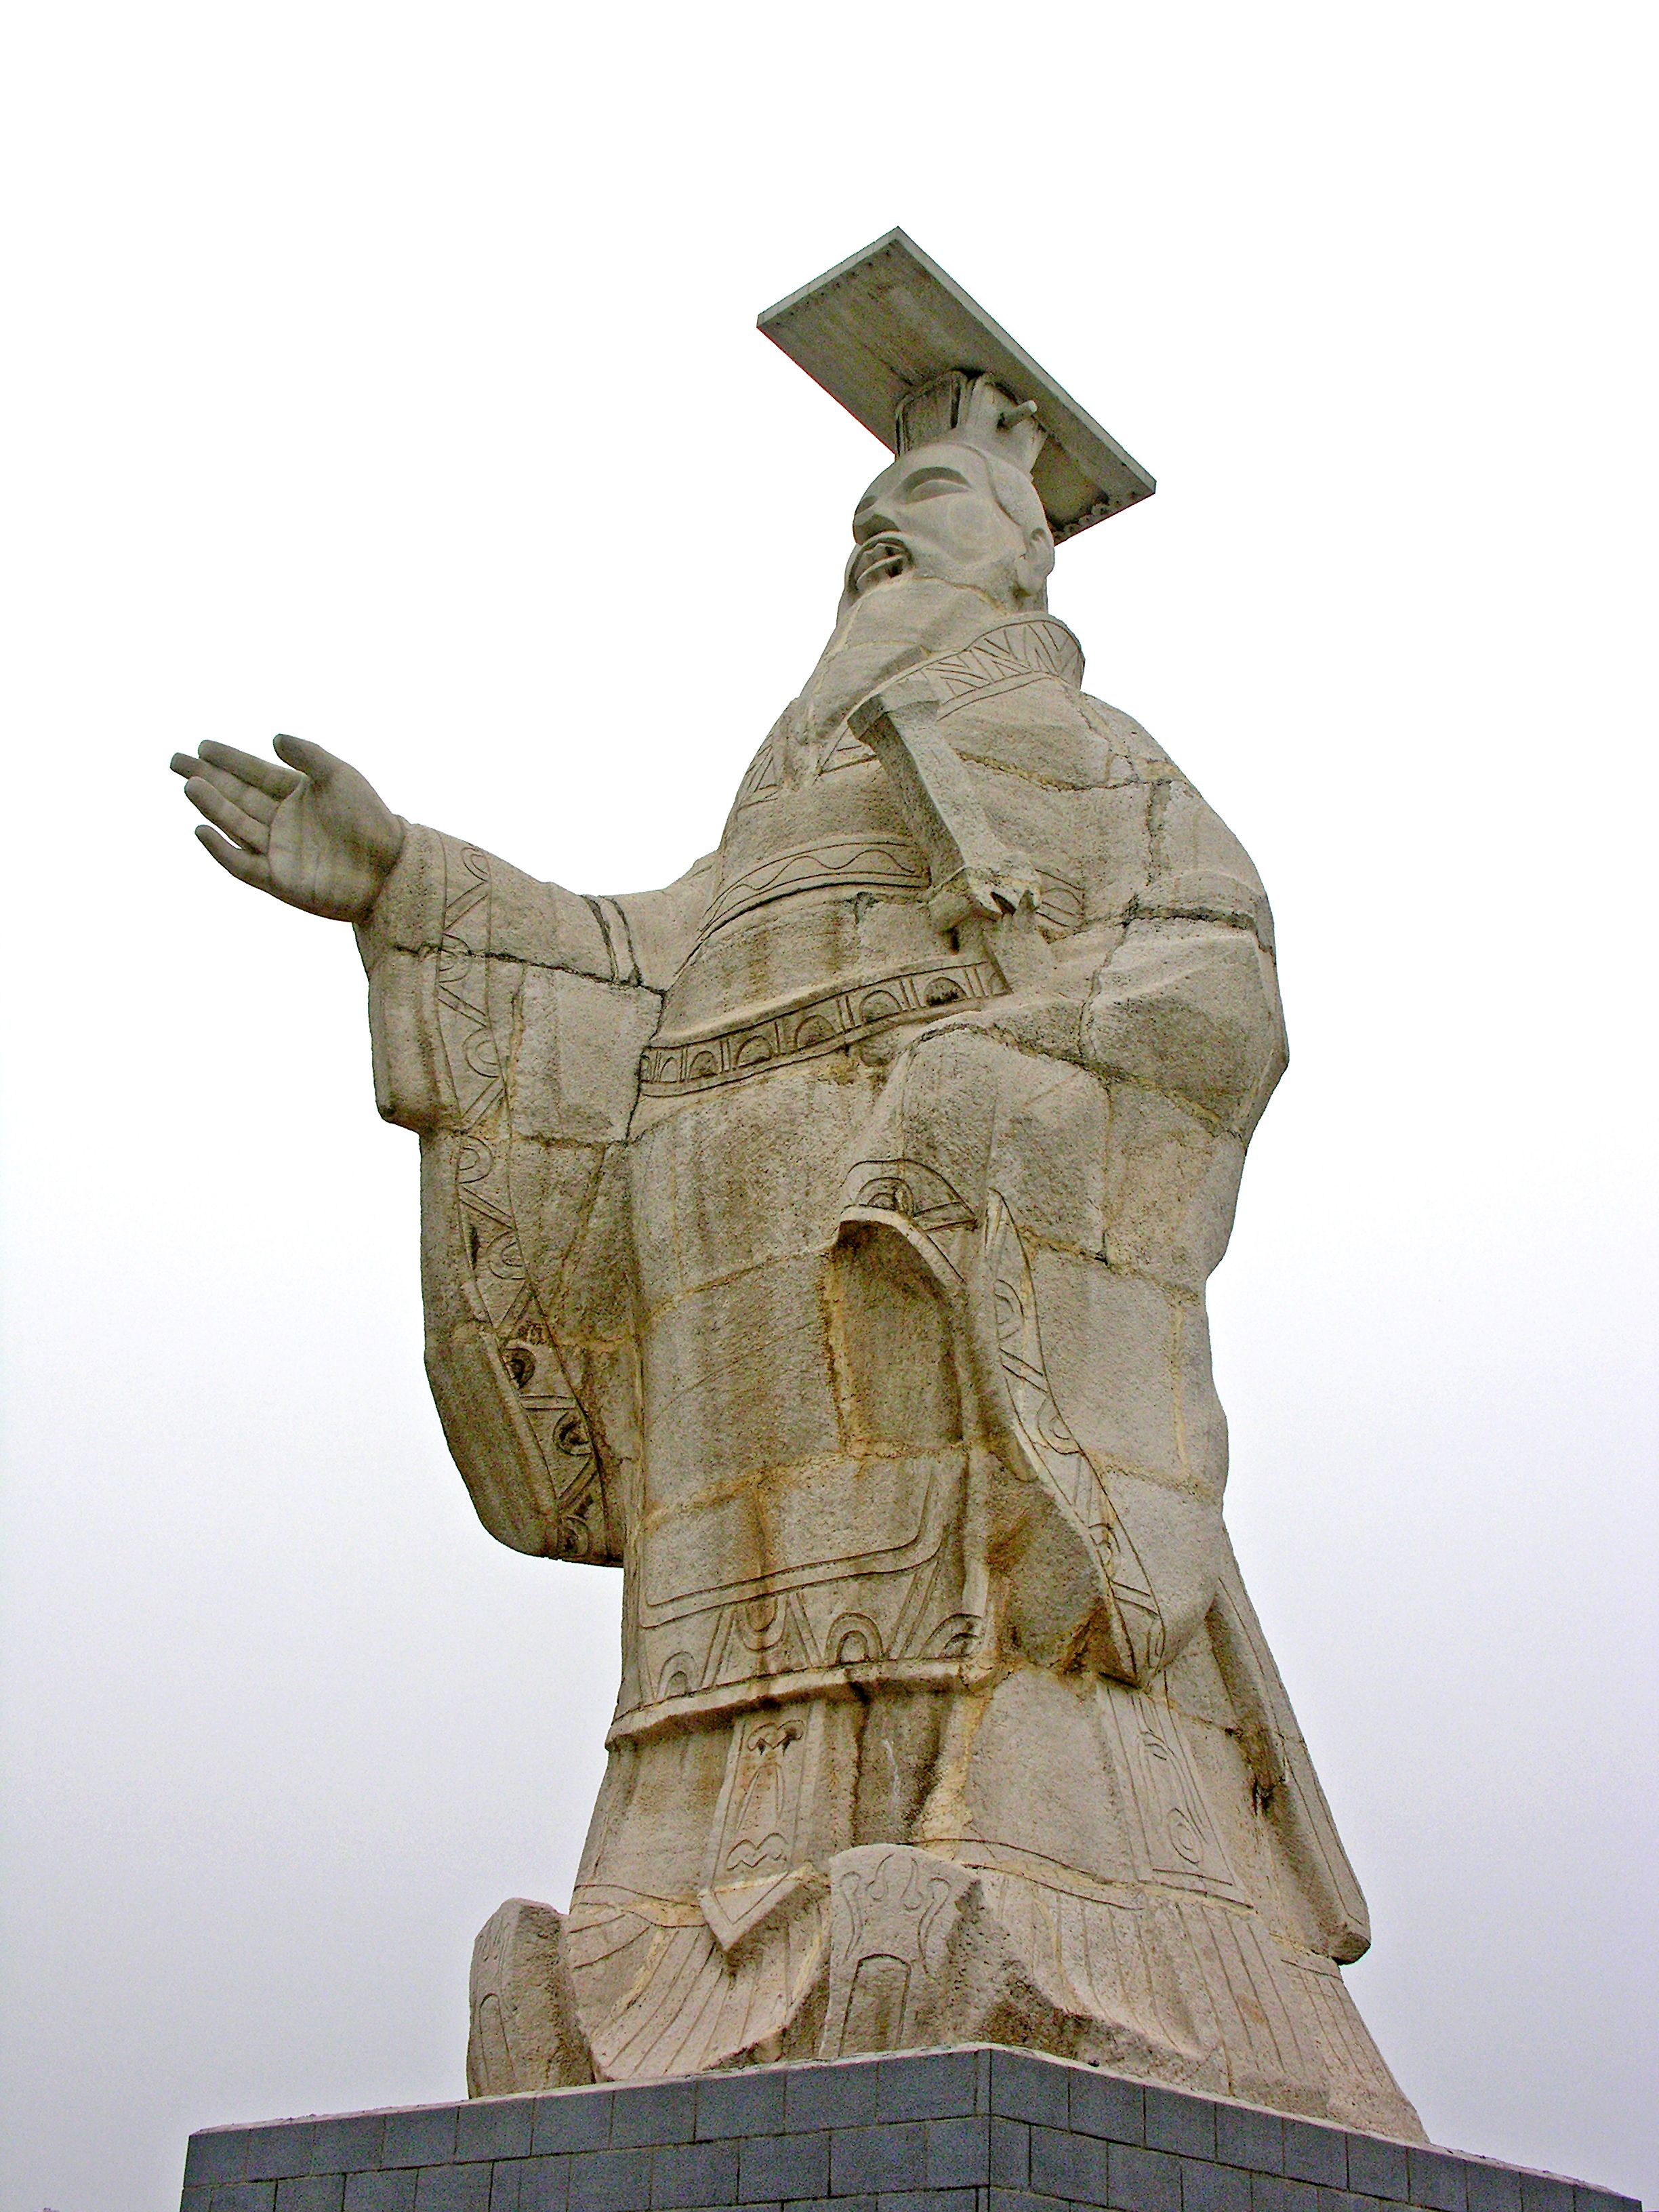 A statue of Shi Huangti (259-210 BCE, also known as Qin Shi Huang, Qin Shih Huandi, Shih Huan-ti) who was the first Emperor of a unified China. Xi'an, Shaanxi, China.